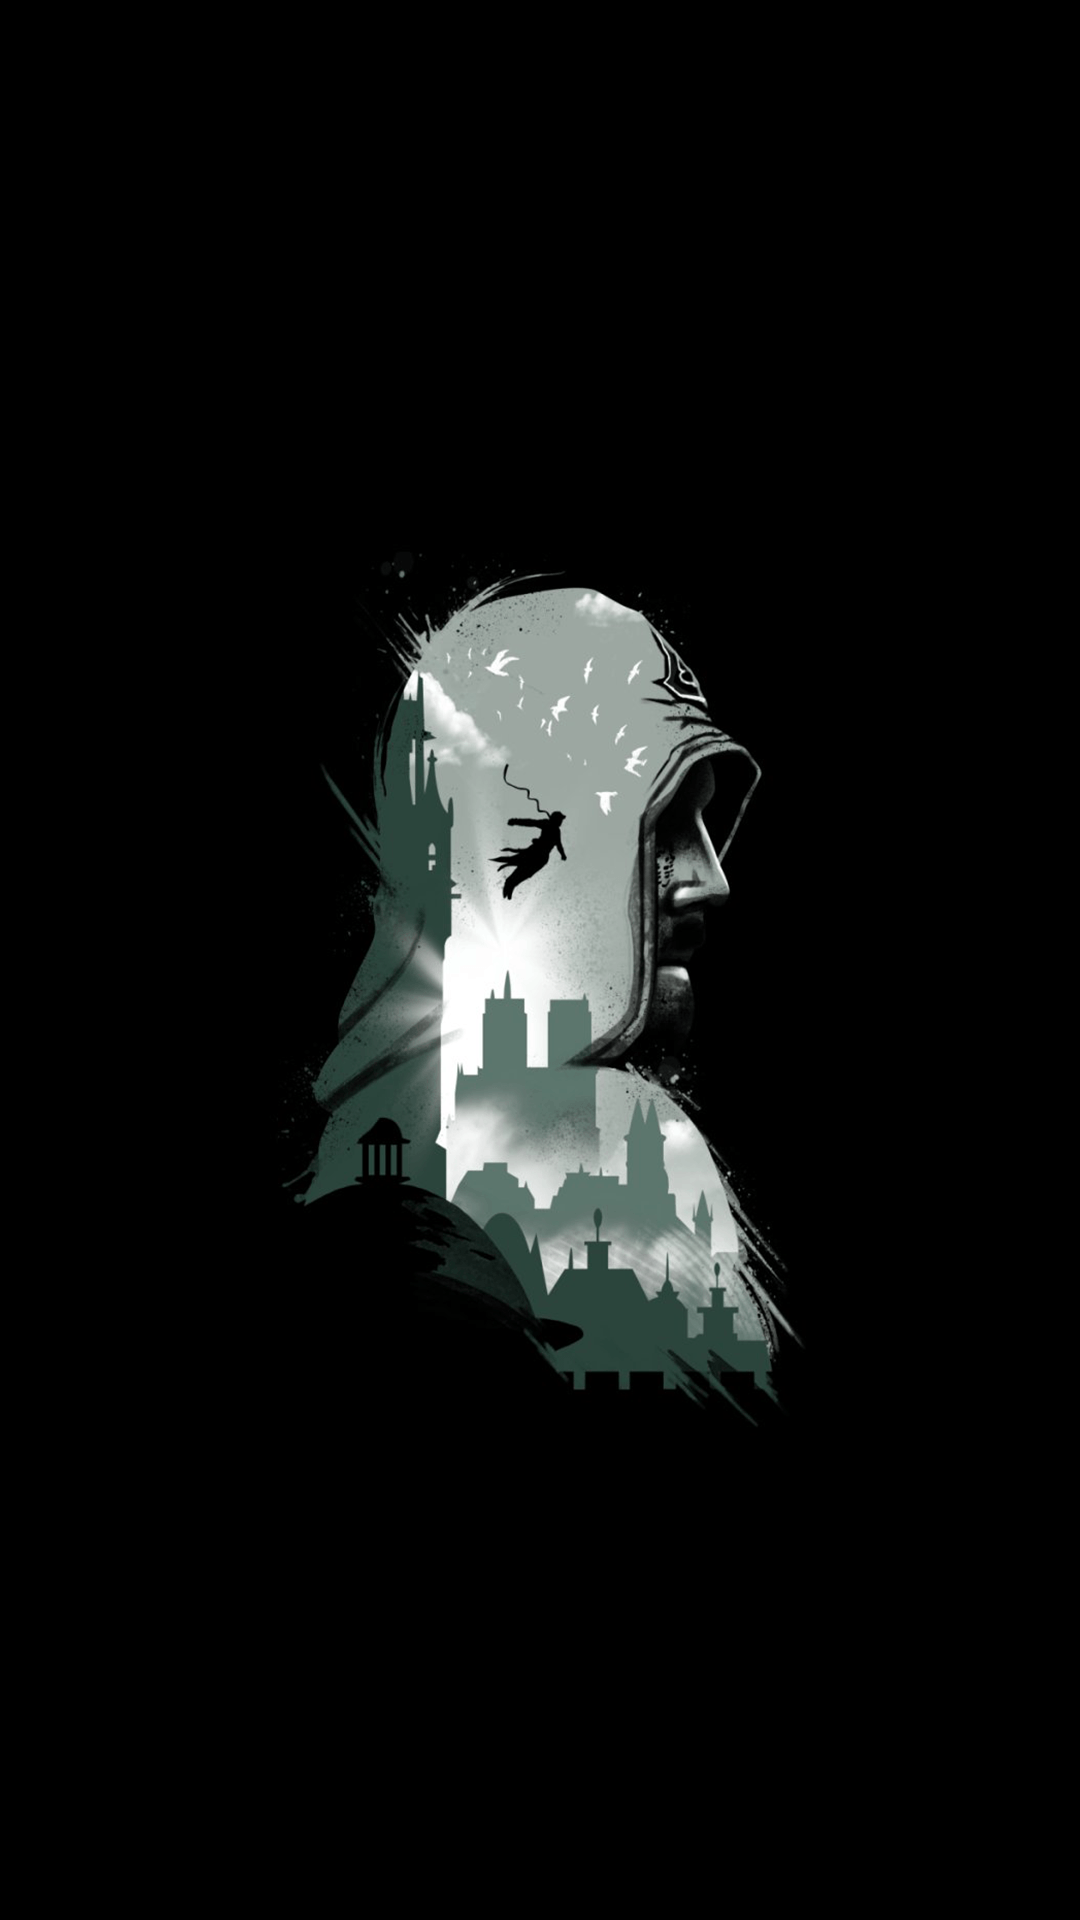 Assassins Creed Logo Wallpaper Posted By Michelle Tremblay